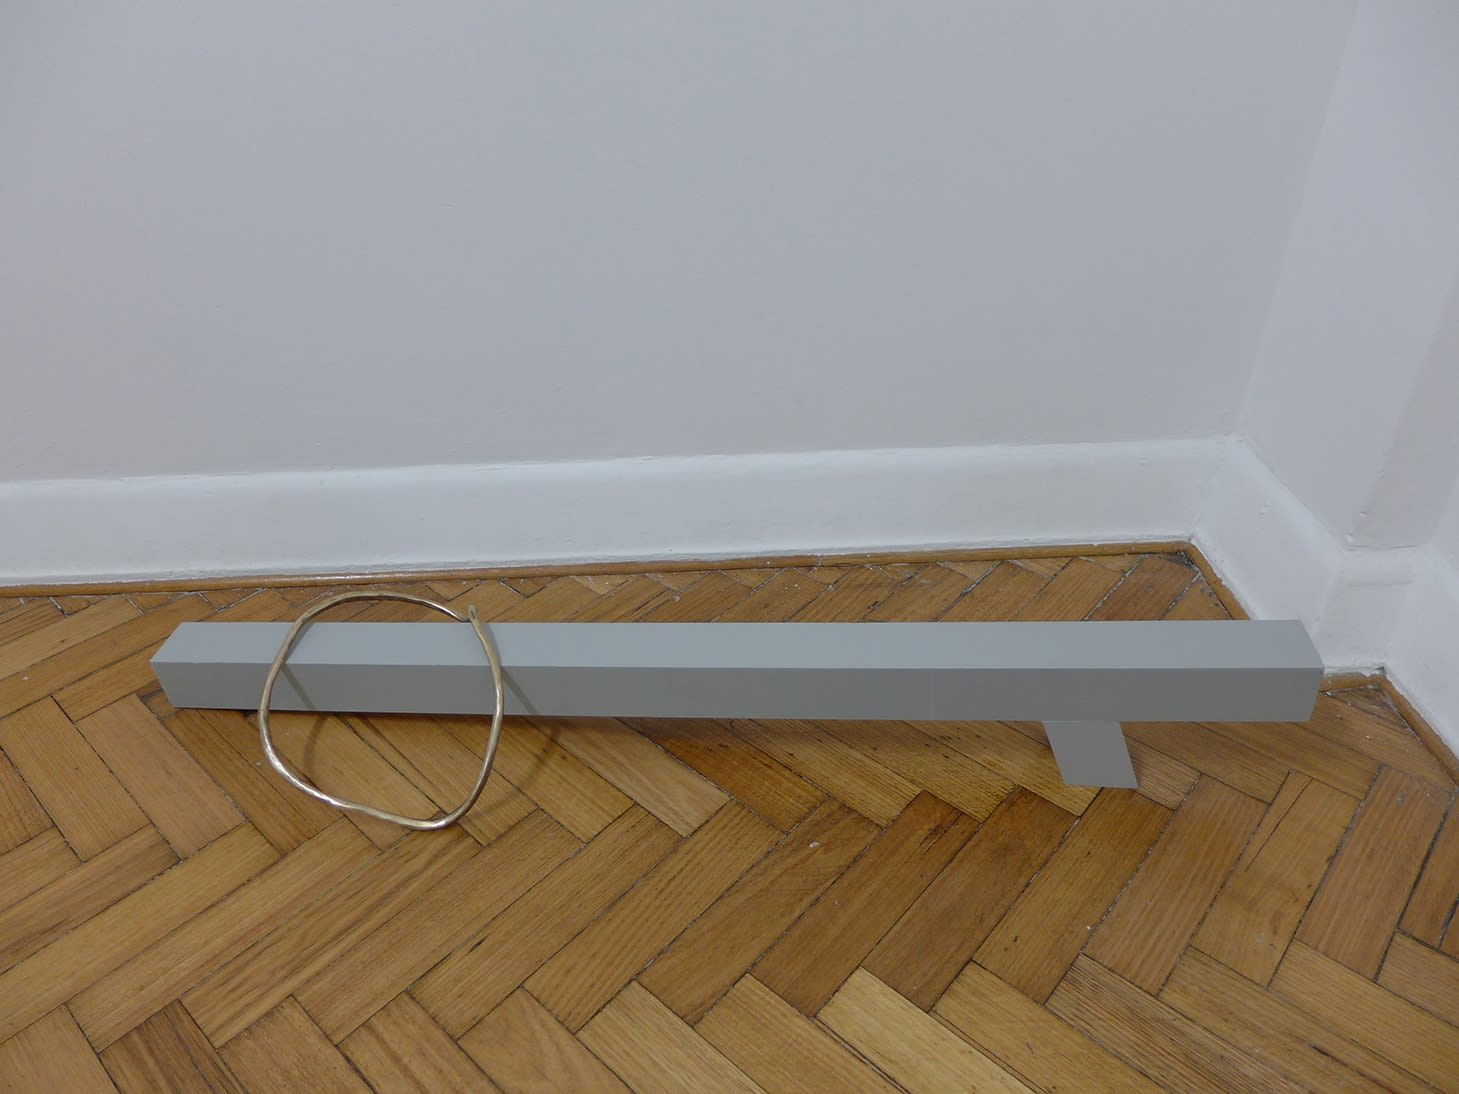 Bianca Hester, performance object #7, 2014